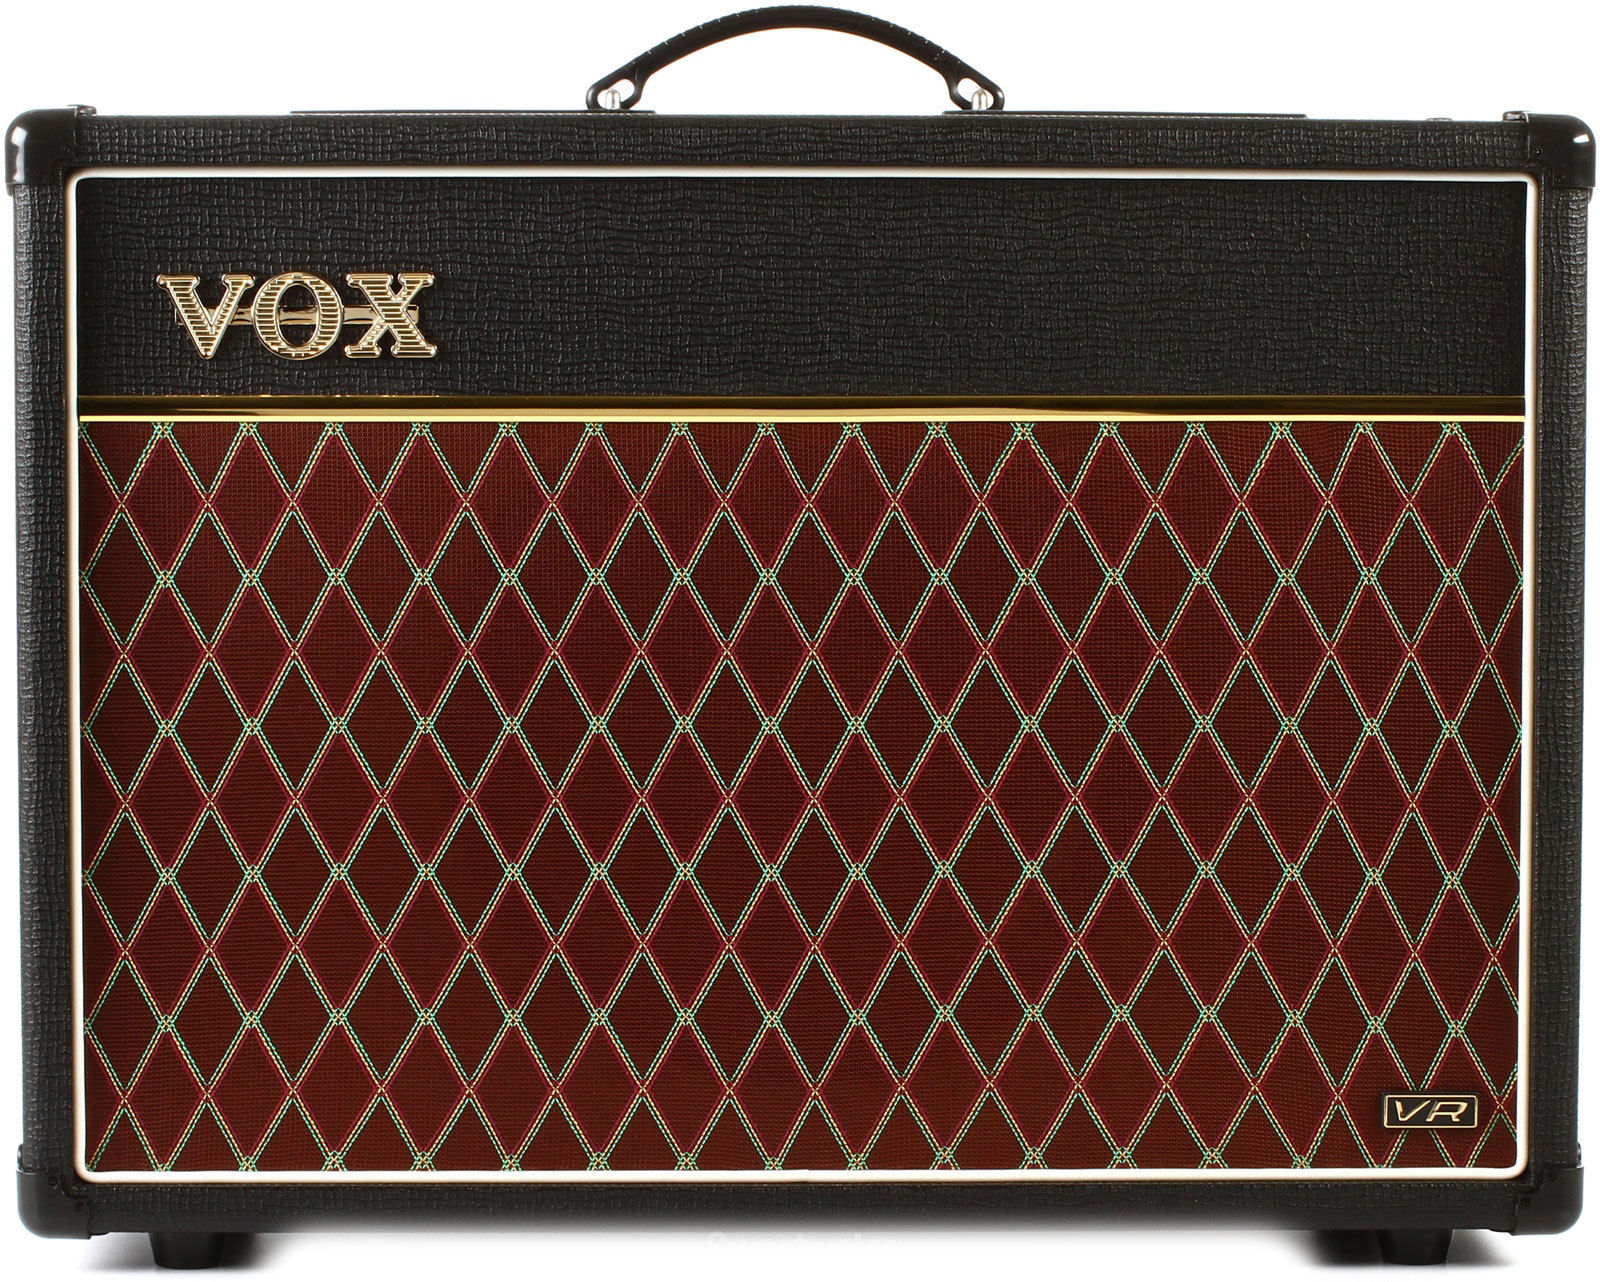 New VOX AC15V Valve Reactor 15-Watt 2-Channel Tube Guitar Combo Amplifier Amp